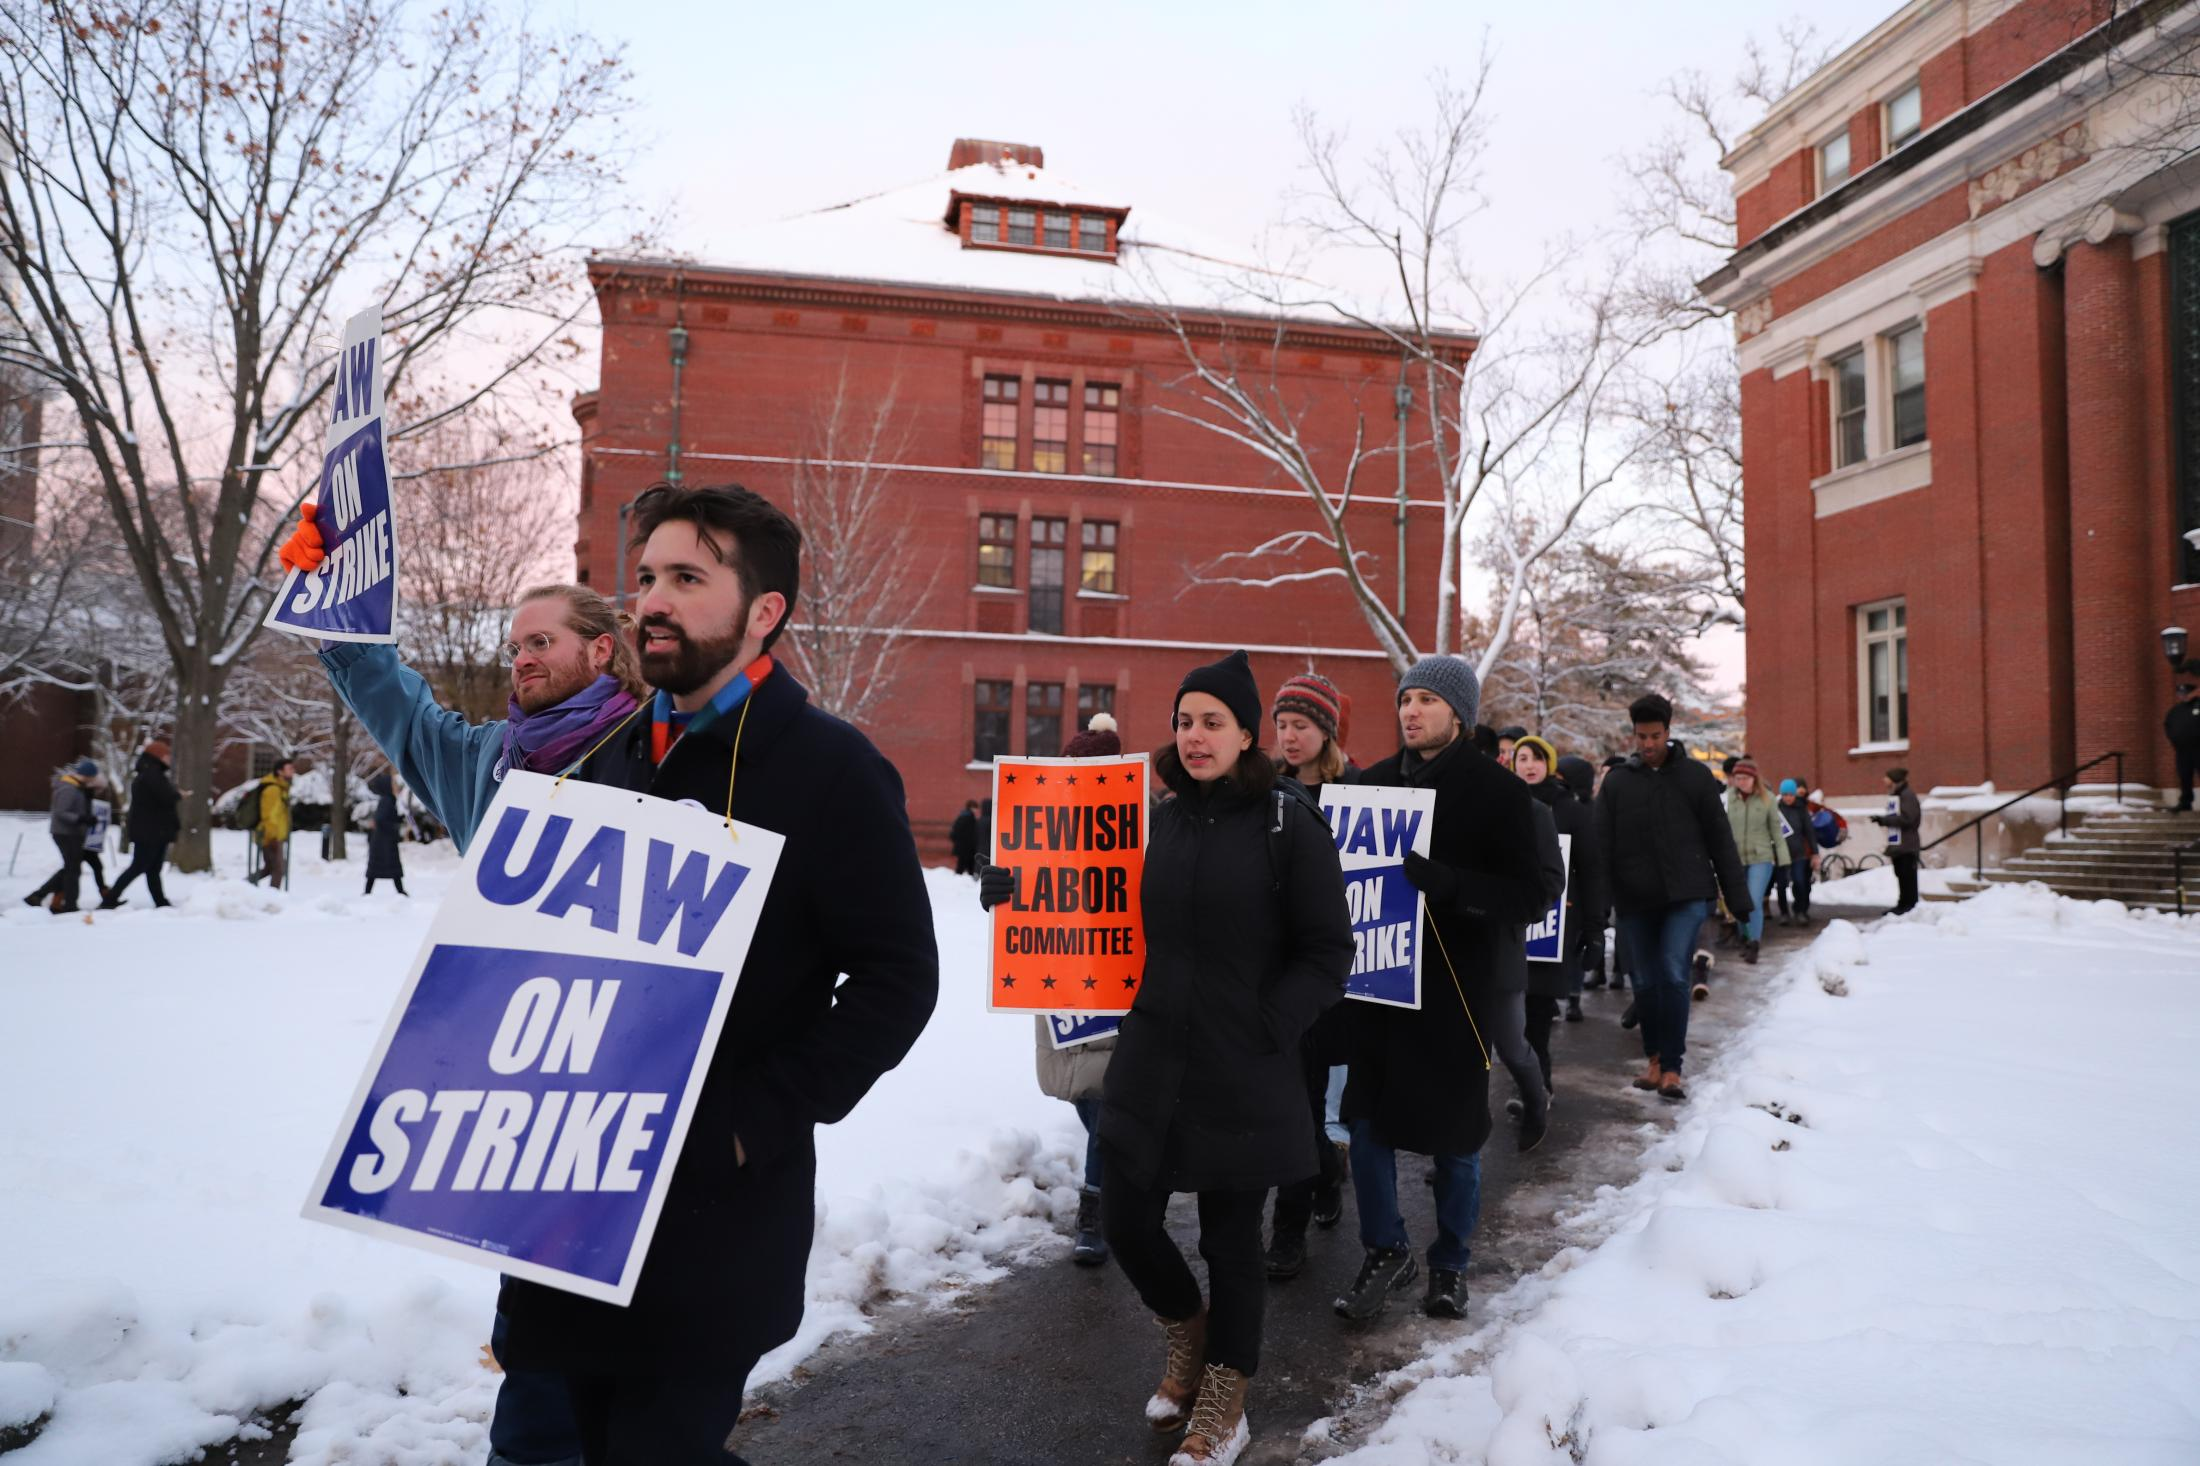 On the first evening of the Graduate Student Union Strike in December 2019, protestors picketed until sunset, encircling Emerson Hall while a faulty meeting went on inside.